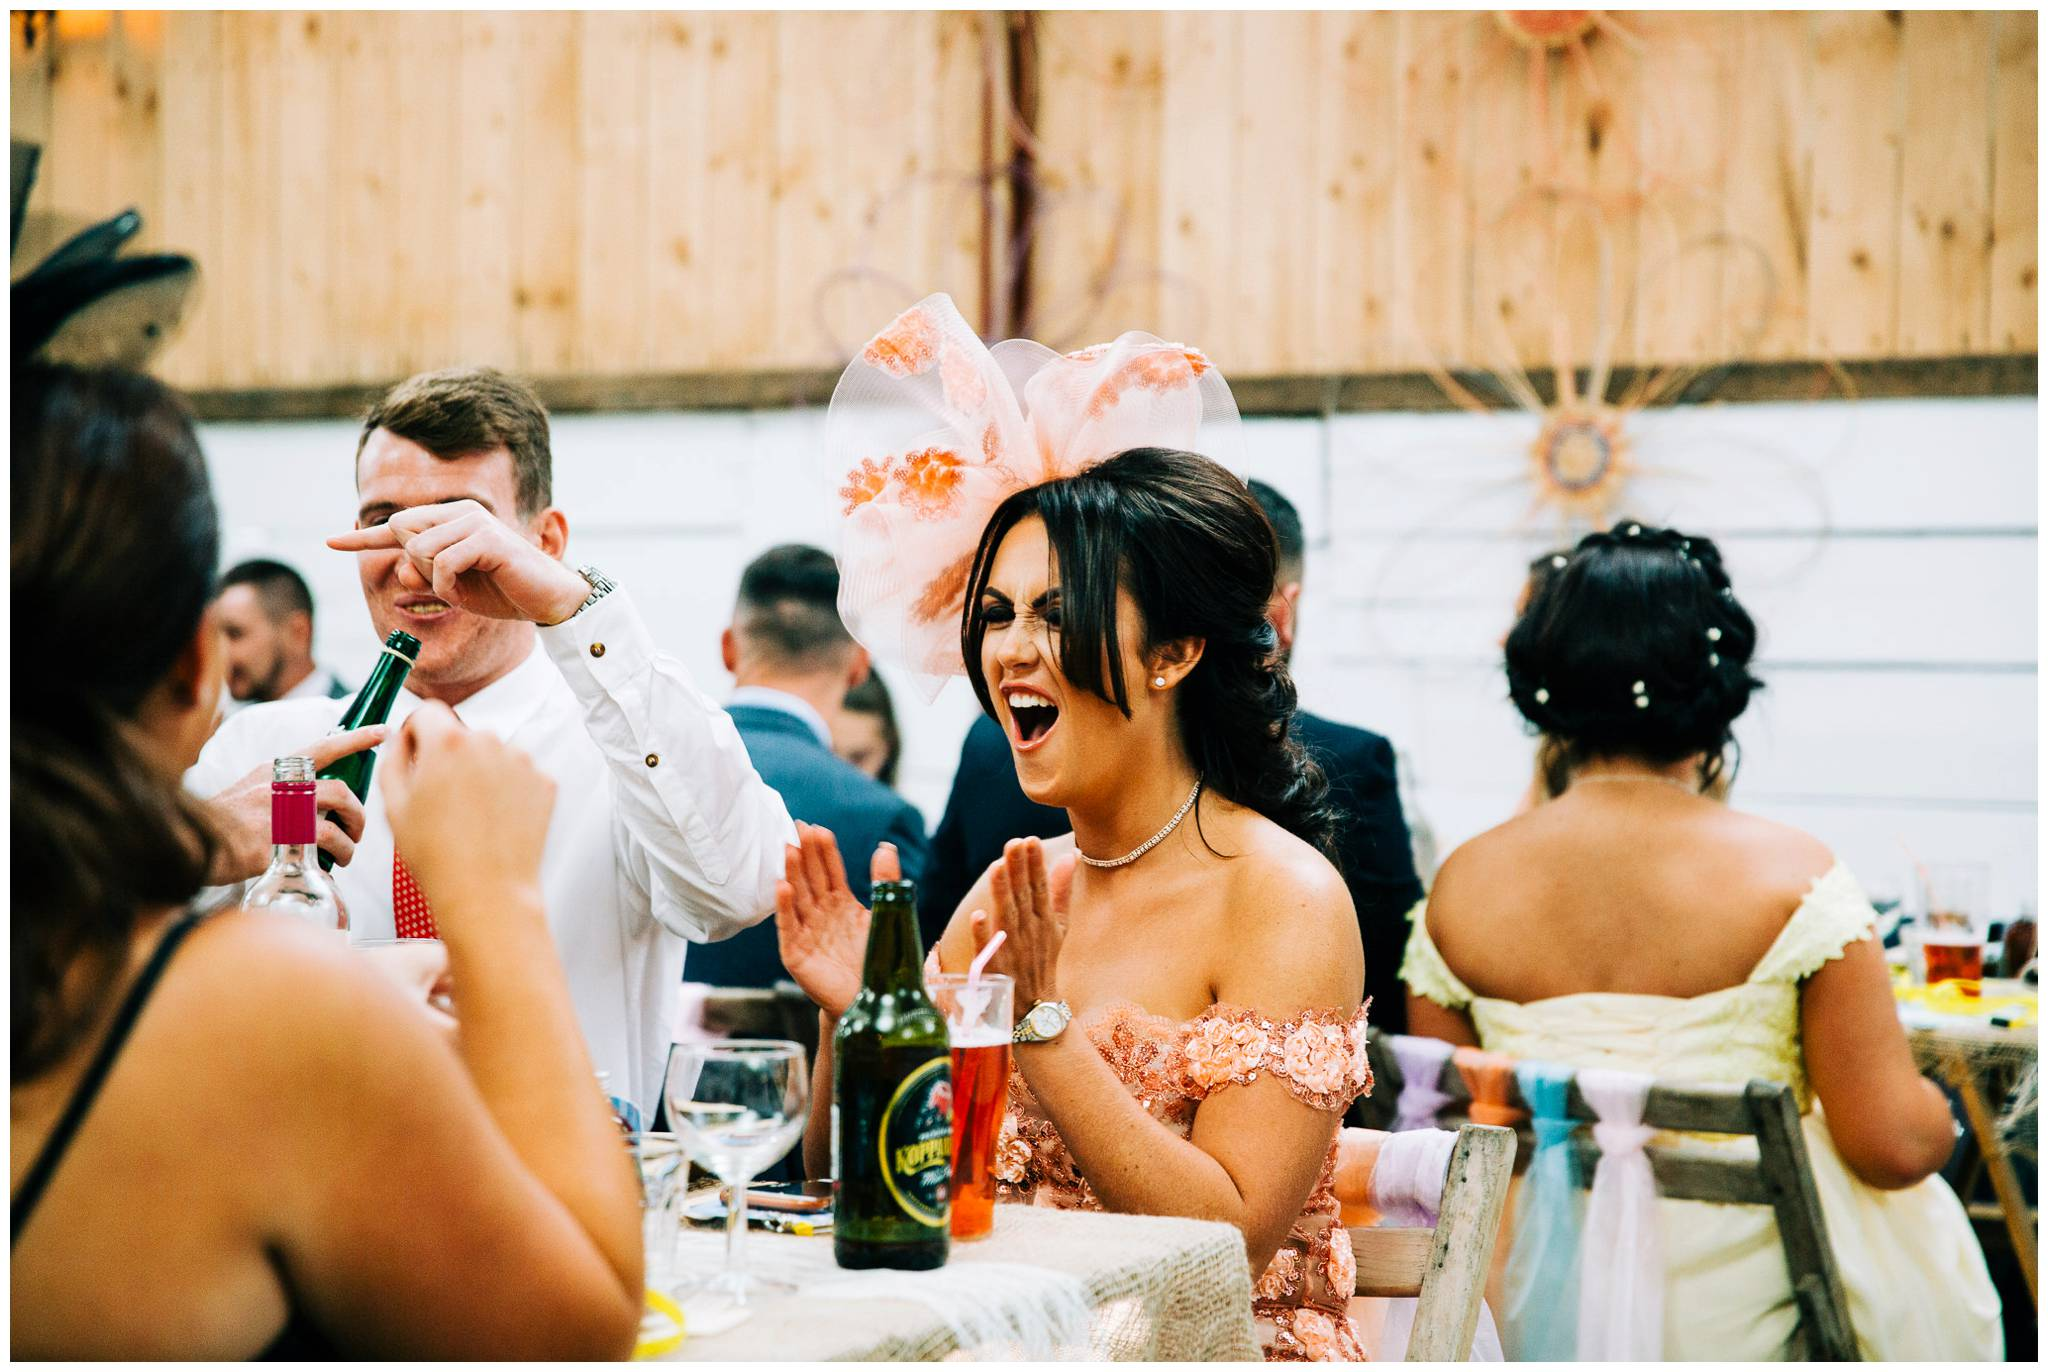 Festival wedding at Wellbeing Farm  - Bolton Wedding Photographer_0056.jpg